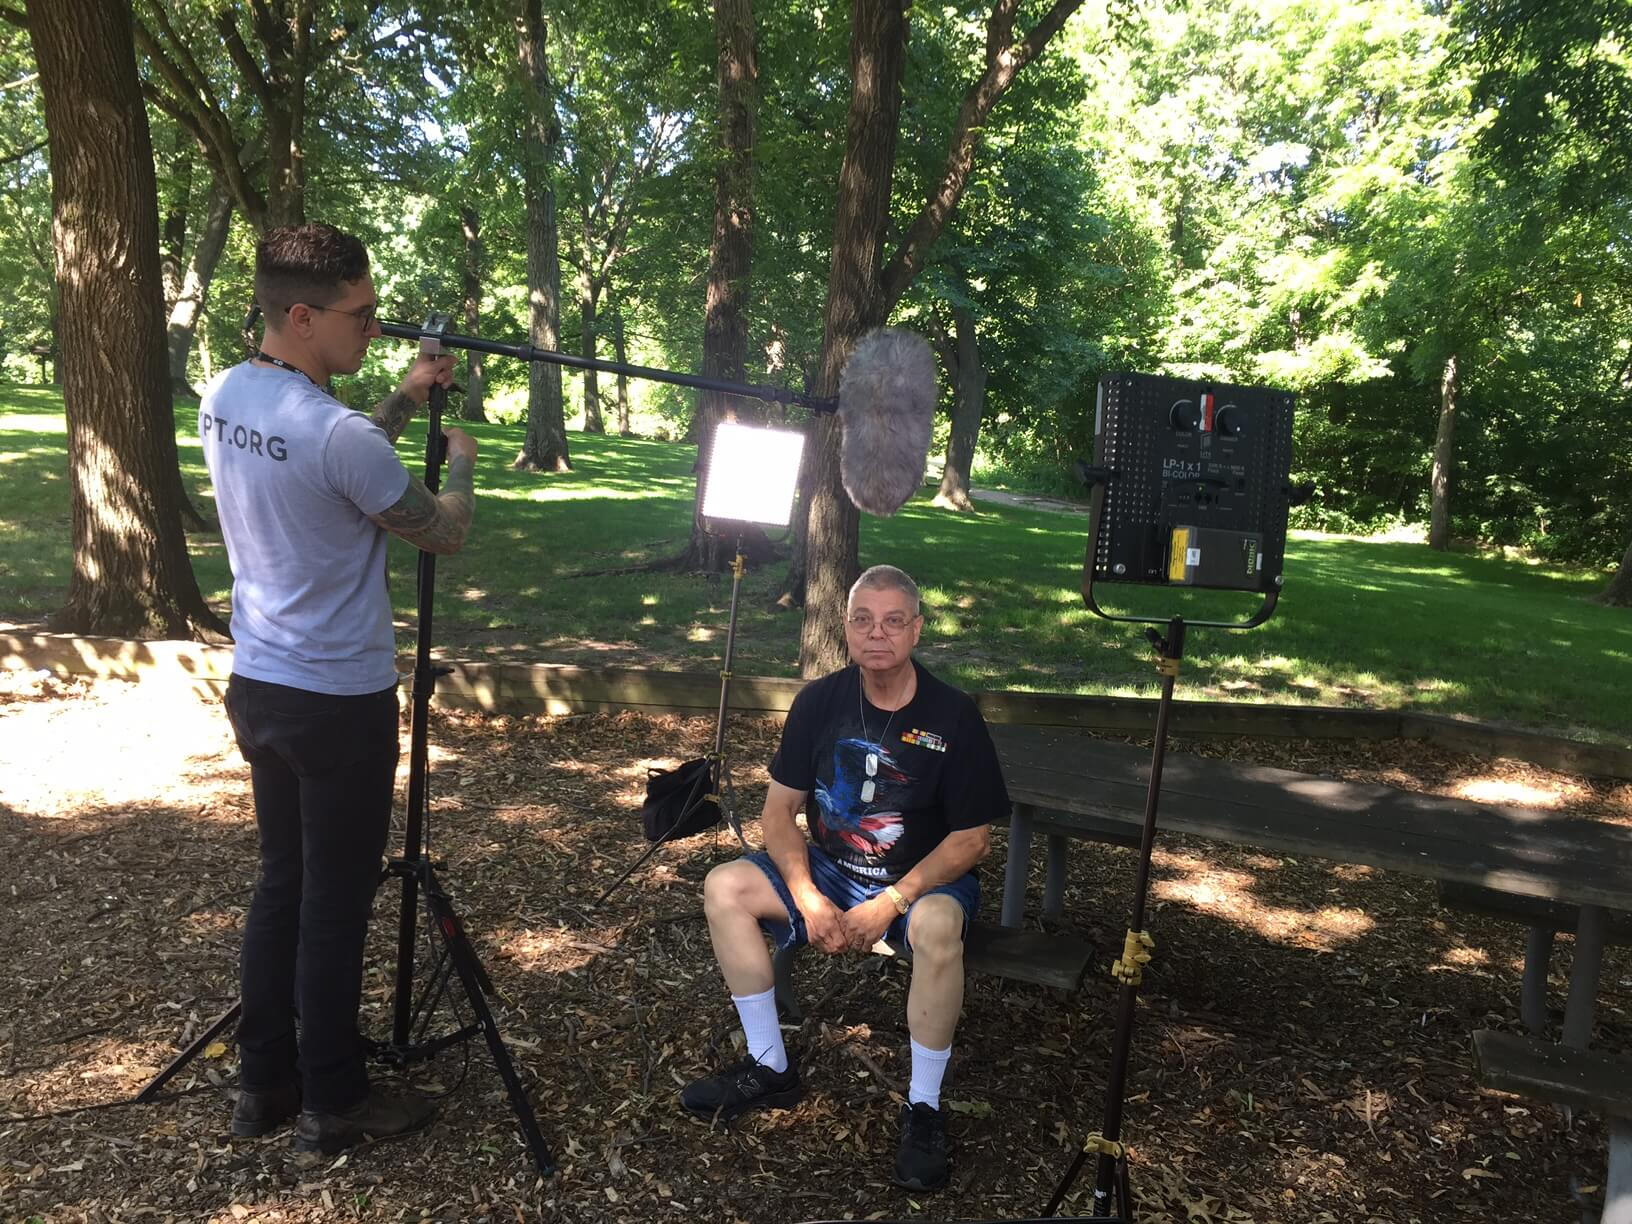 Man being interviewed in a park.